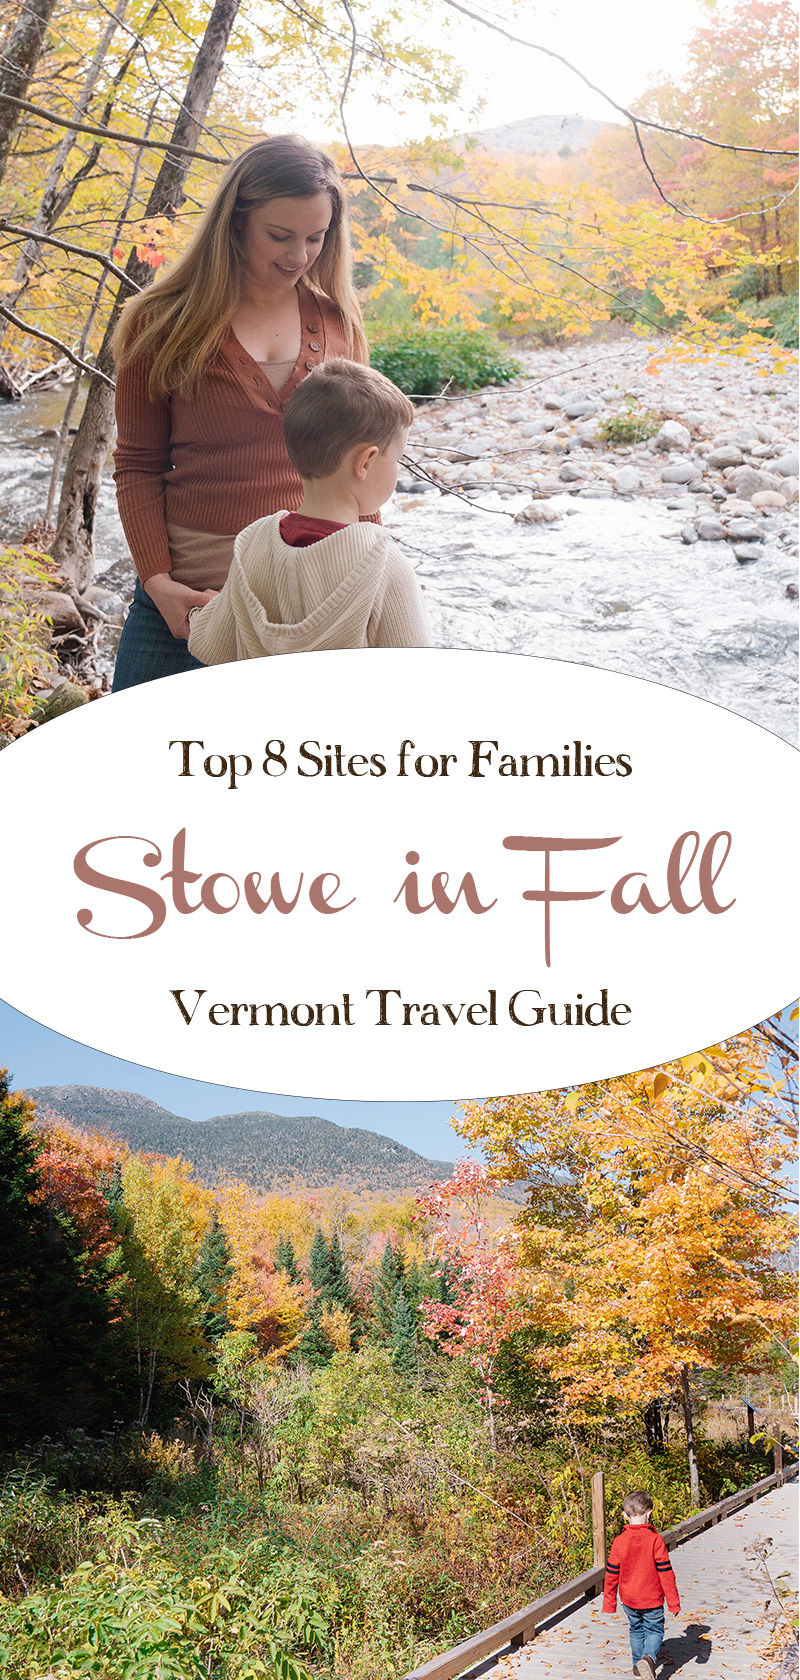 Top-8-Sites-for-Families-Stowe-in-Fall-Vermont-Travel-Guide